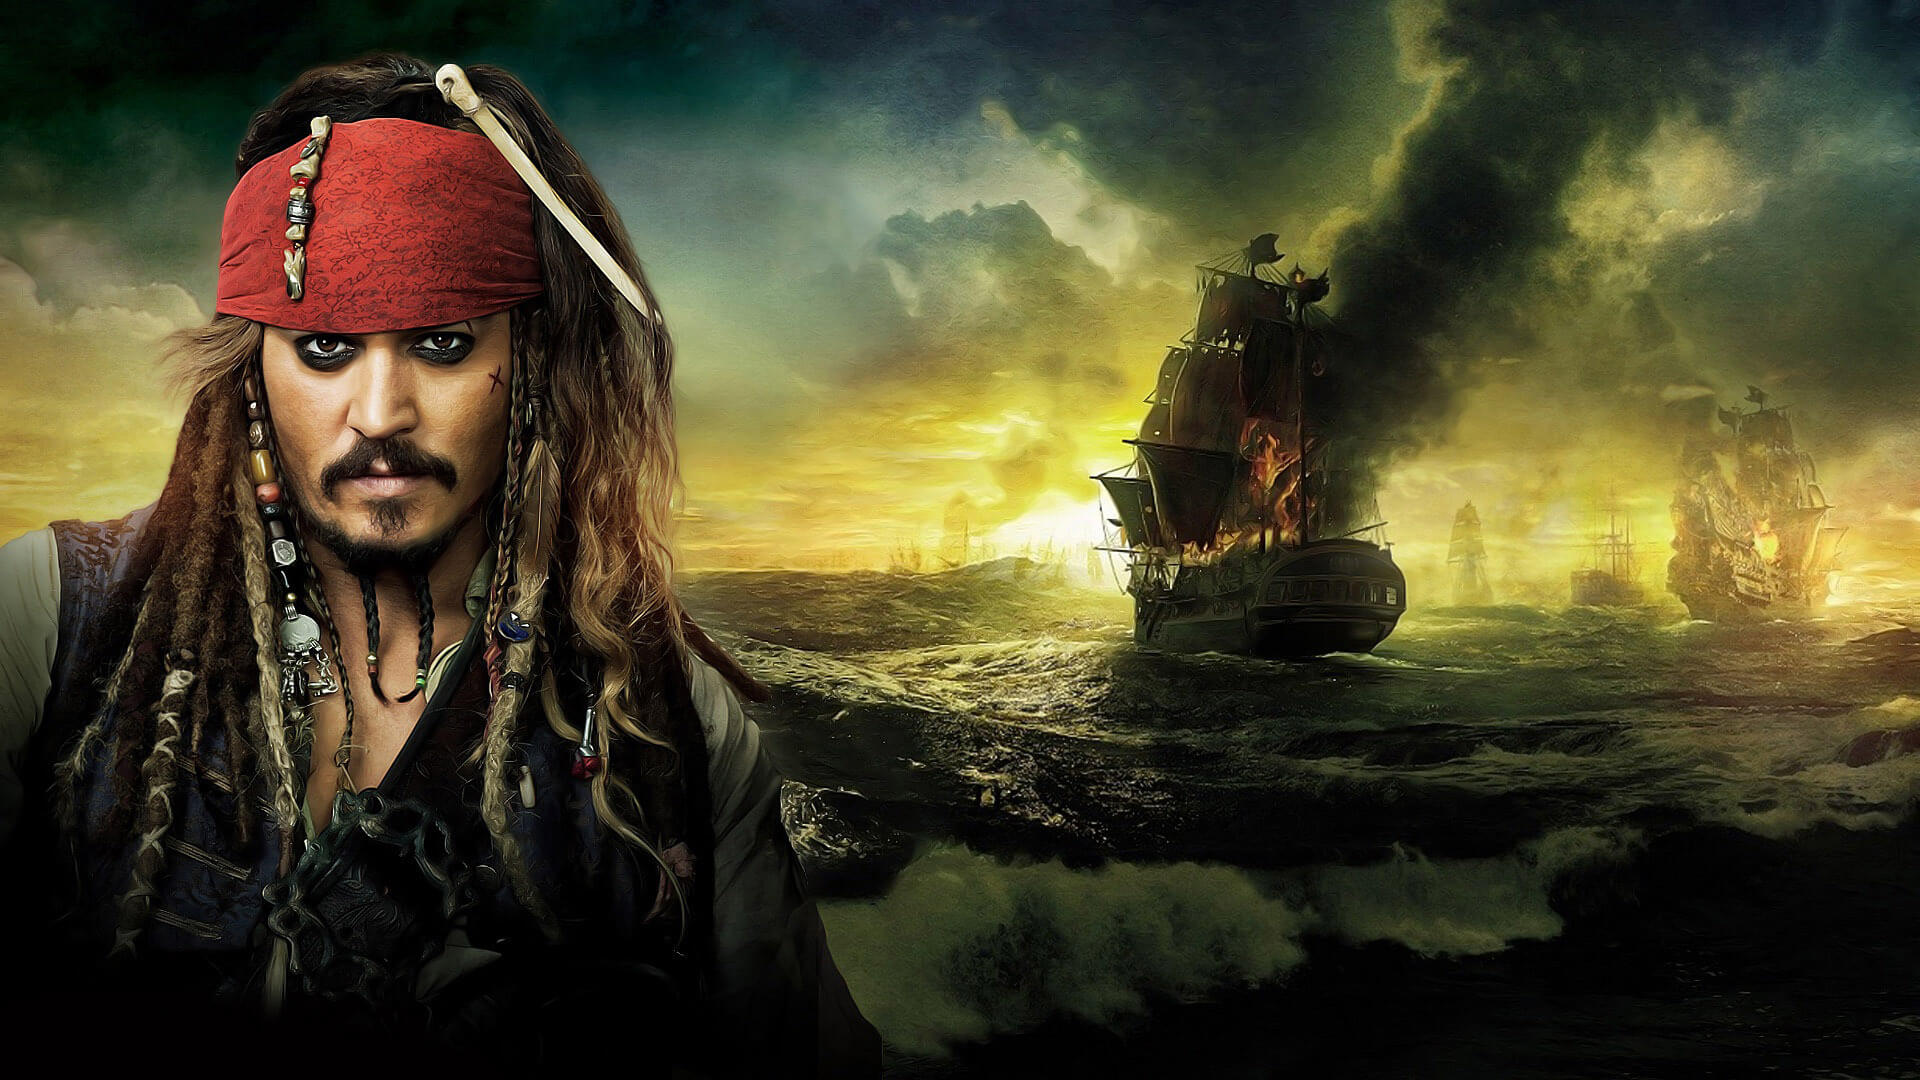 Pirates of the Caribbean: Dead Men Tell No Tales Trailer Revealed